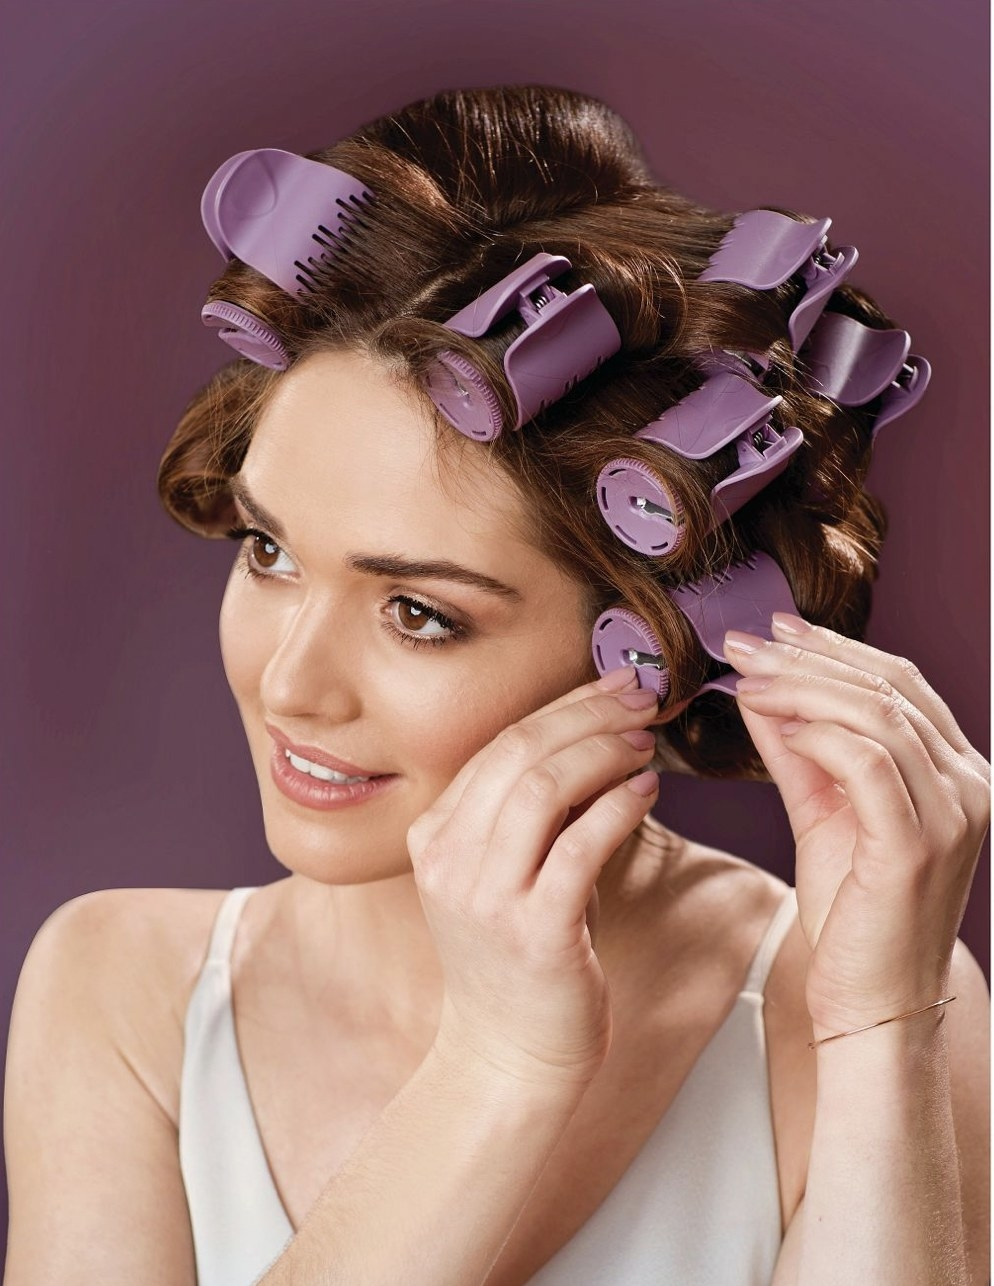 A woman with heated rollers in her head